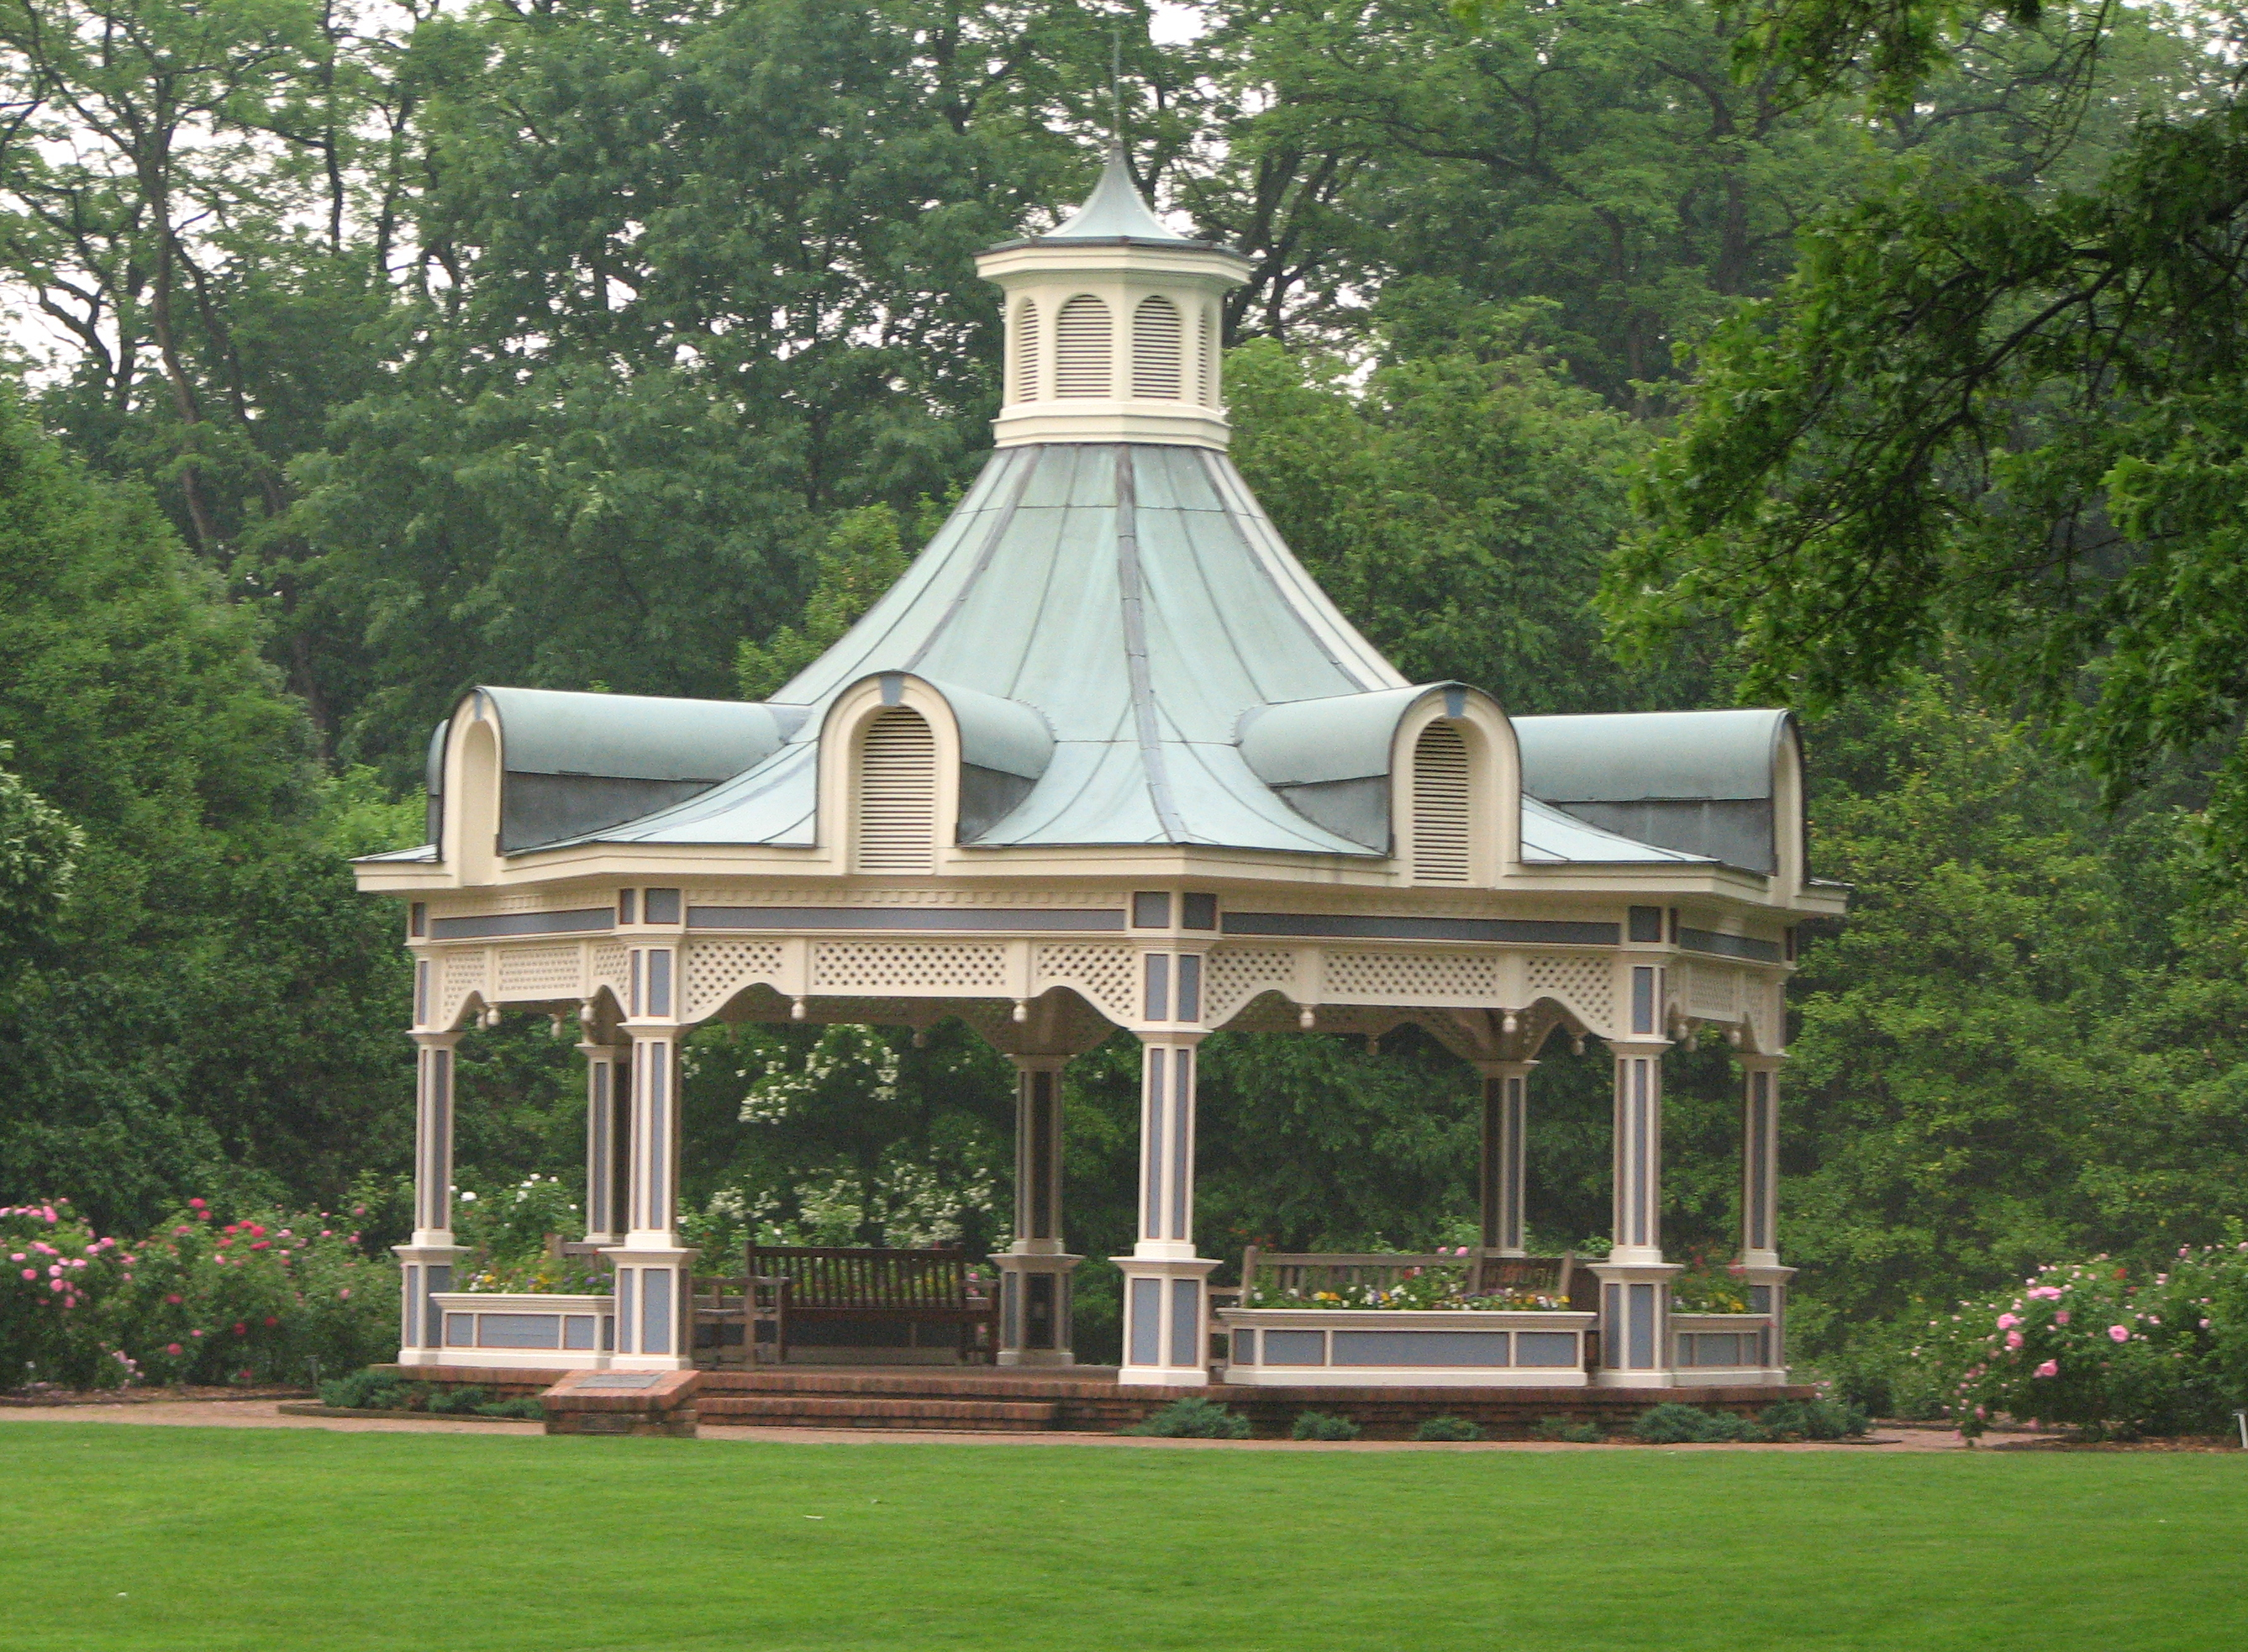 43 Wicked Gazebo Design Ideas throughout Ideas For Gazebos Backyard